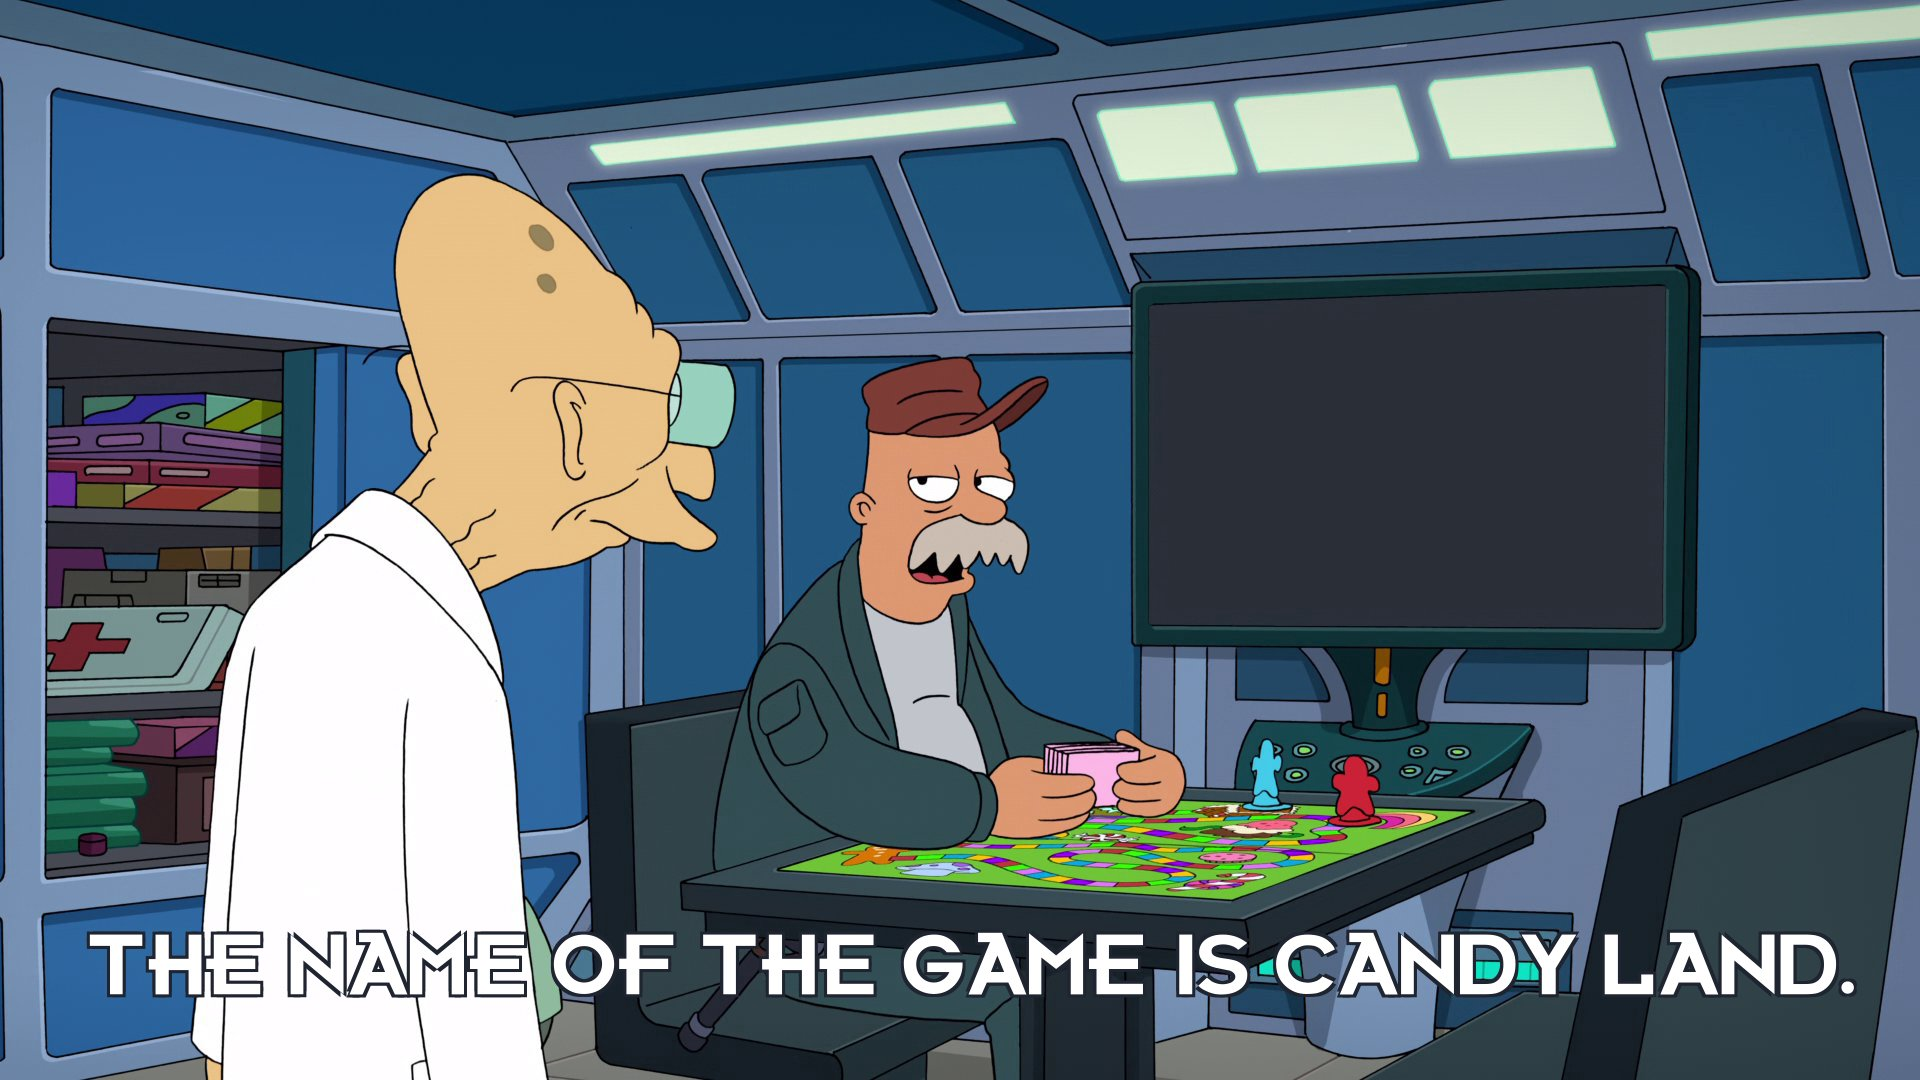 Scruffy: The name of the game is Candy Land.